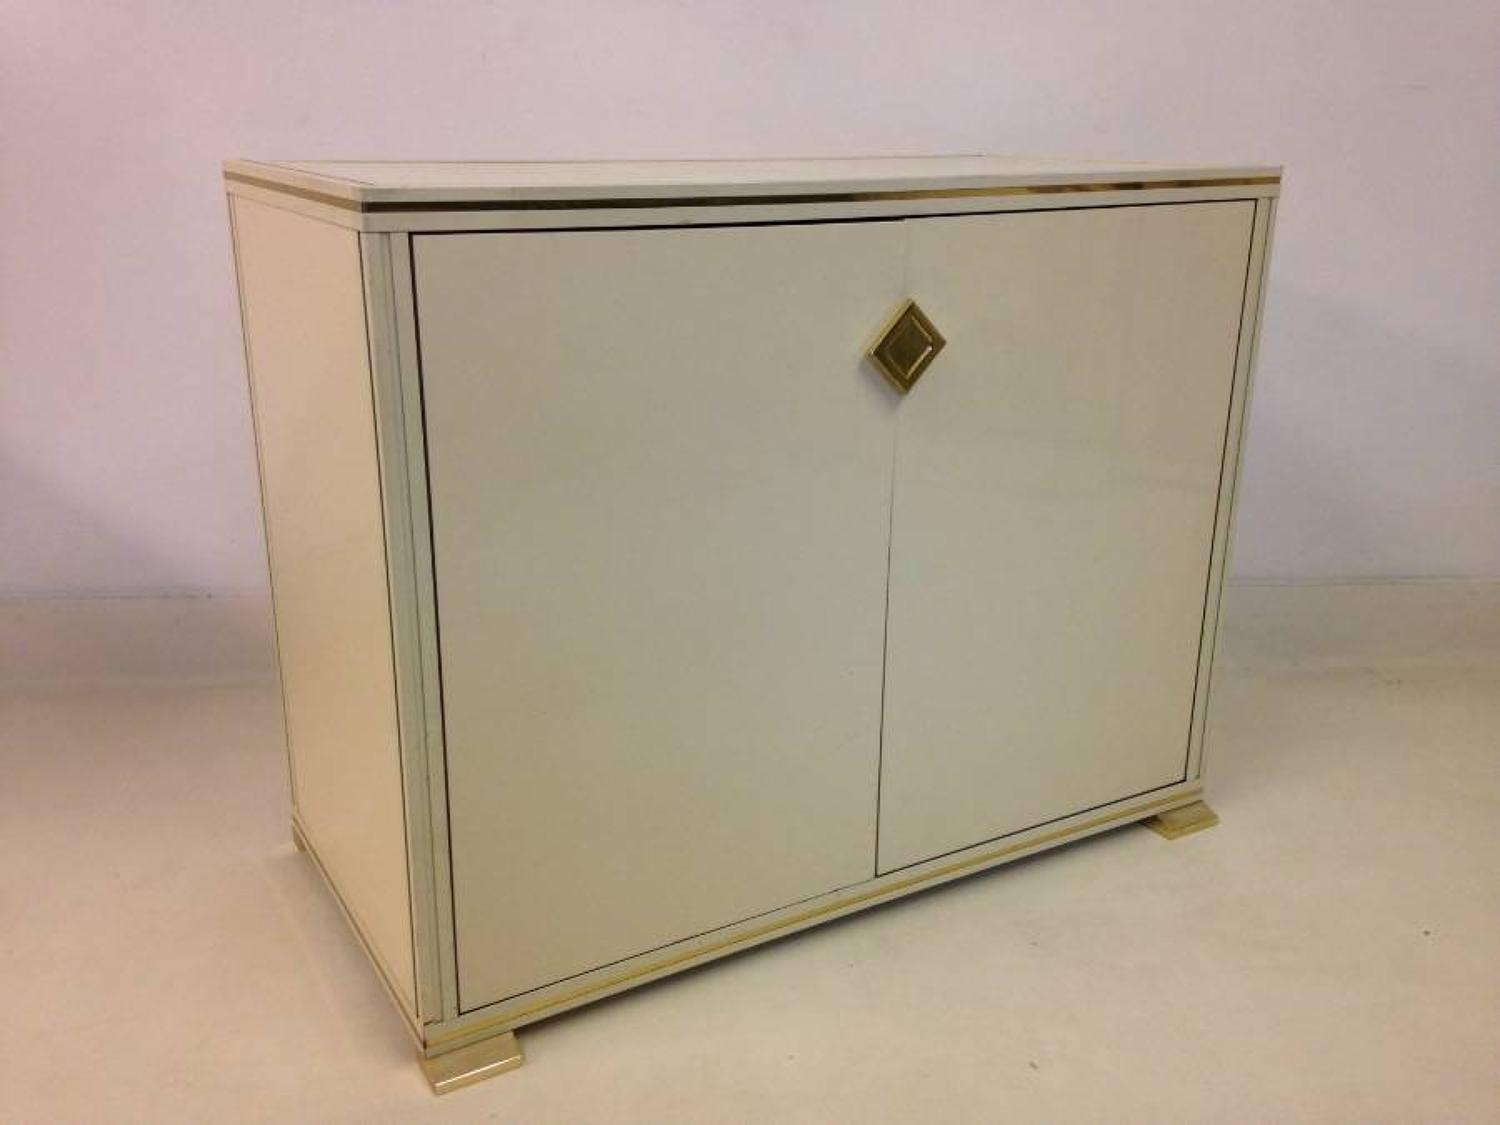 Lacquered wood and brass cabinet by Pierre Vandel